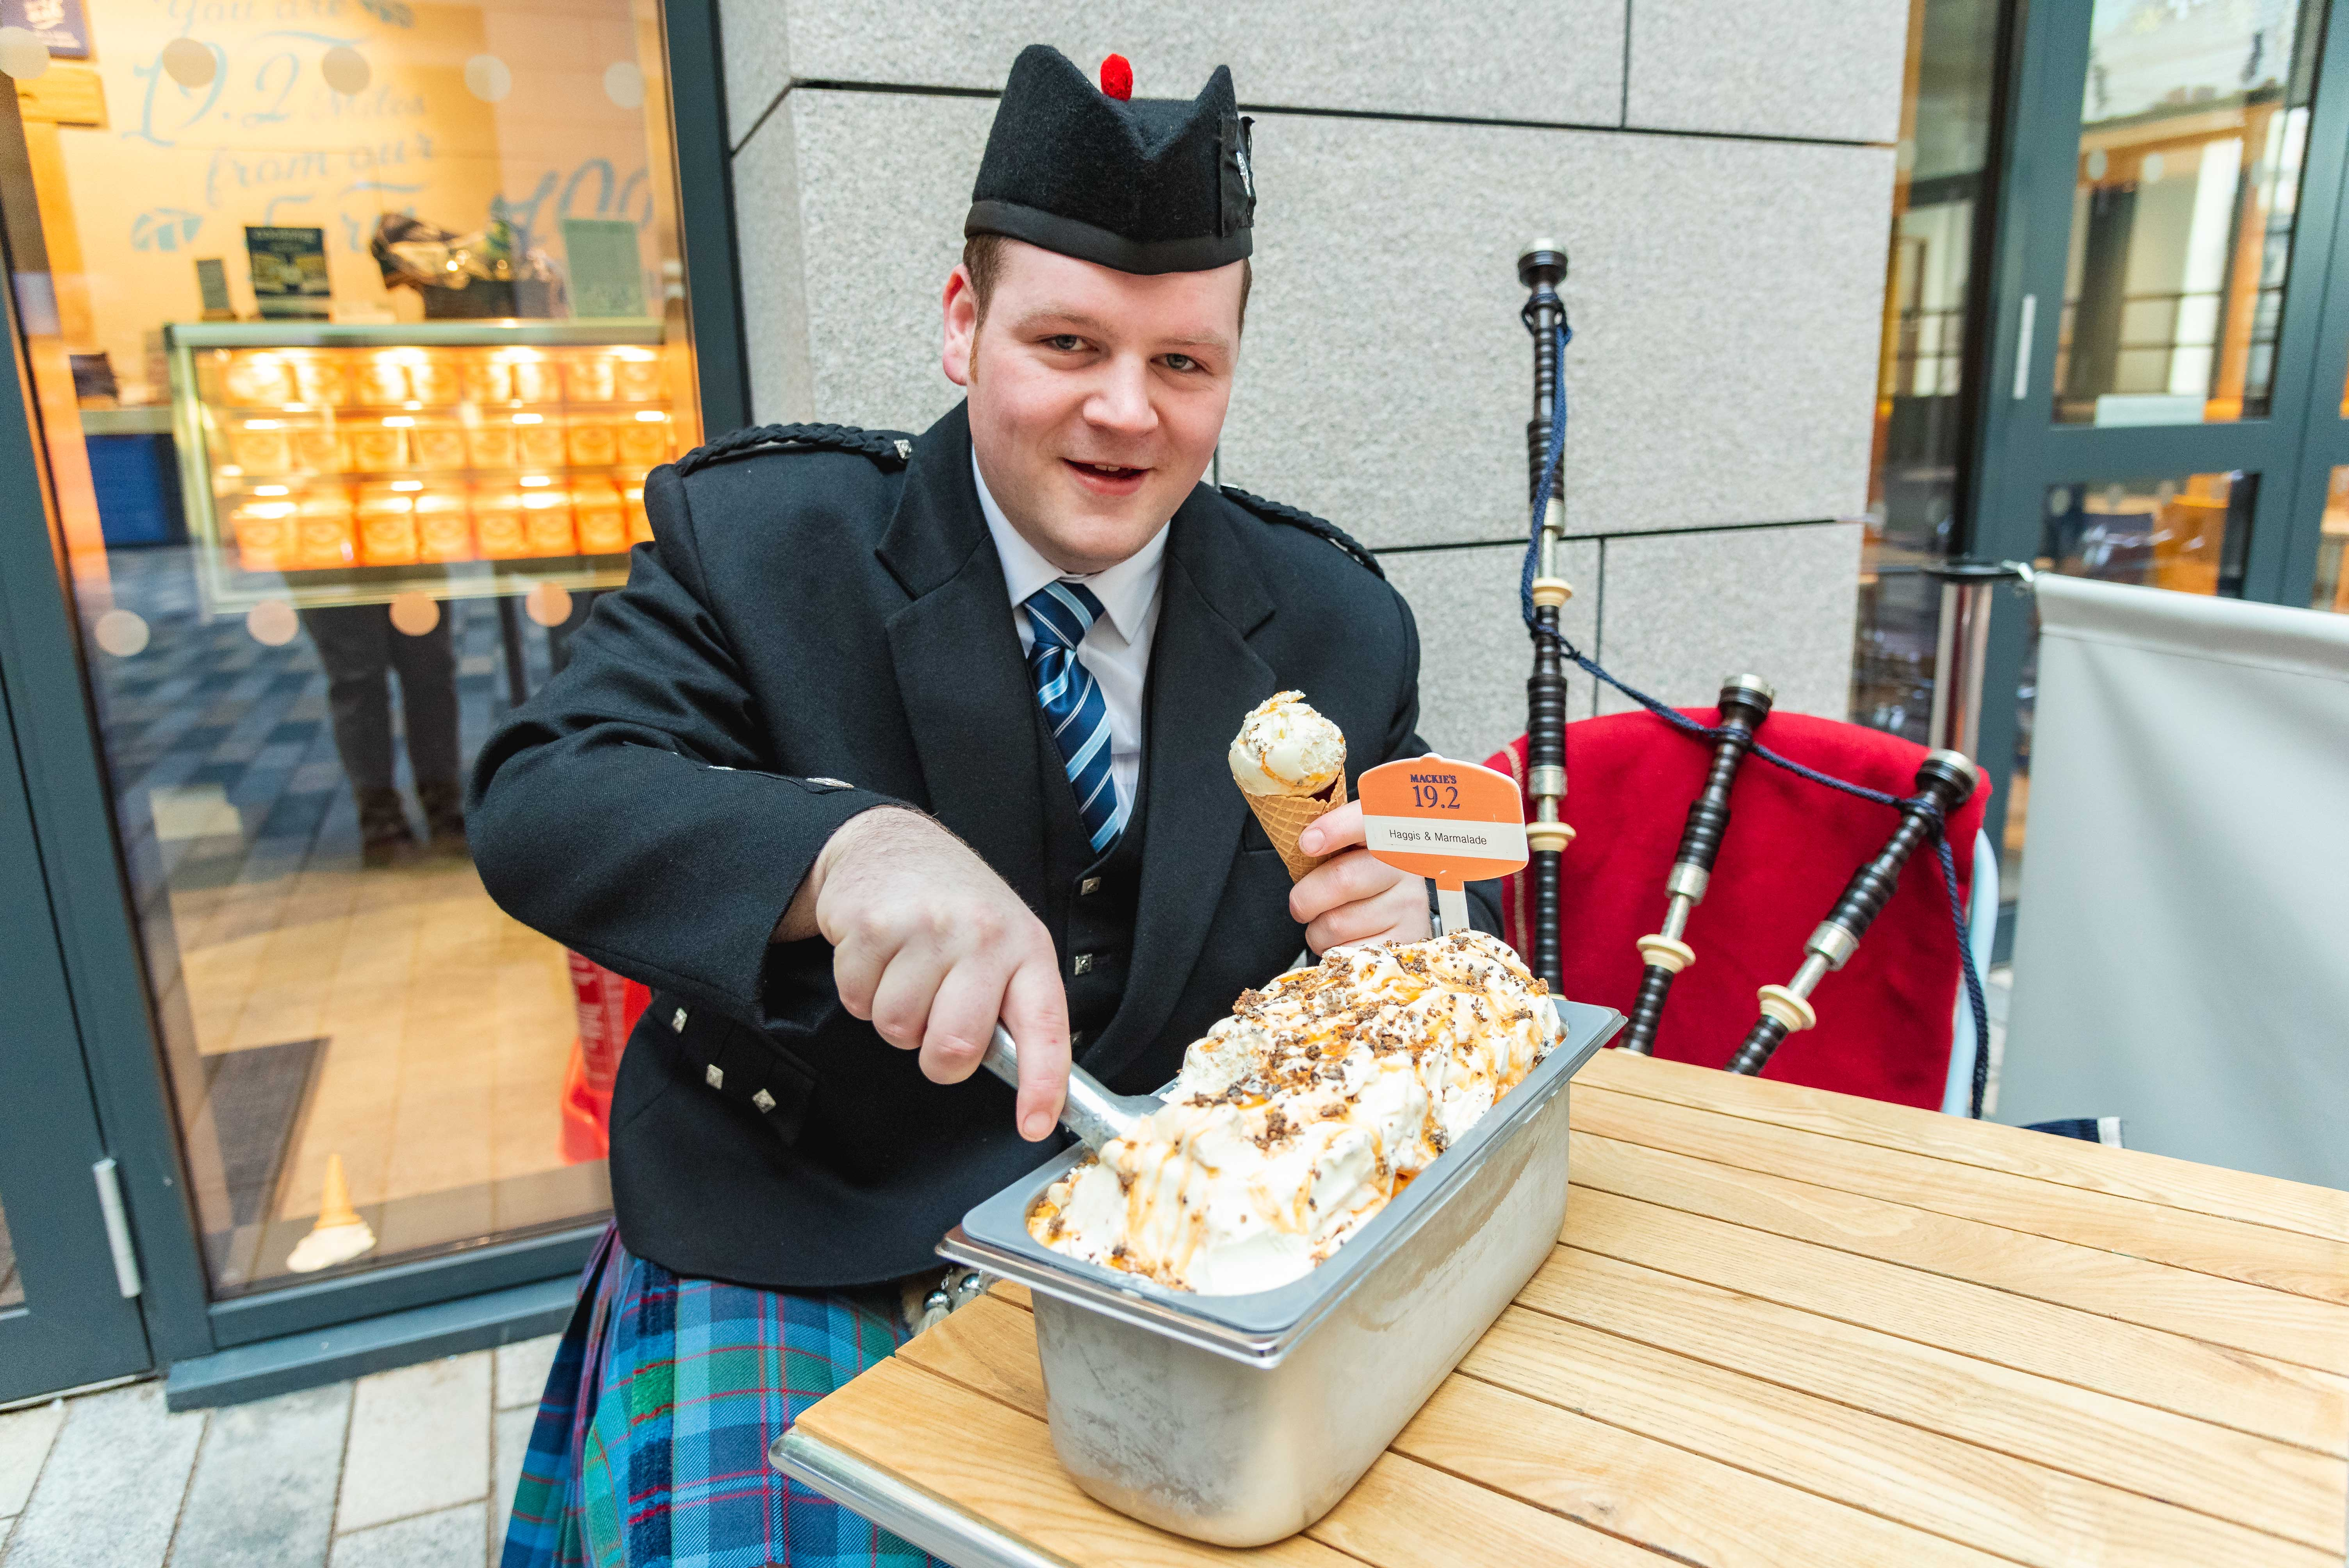 Piper Robert Reid scooping Haggis Ice Cream at Mackie's 19.2 in a food and drink pr photo